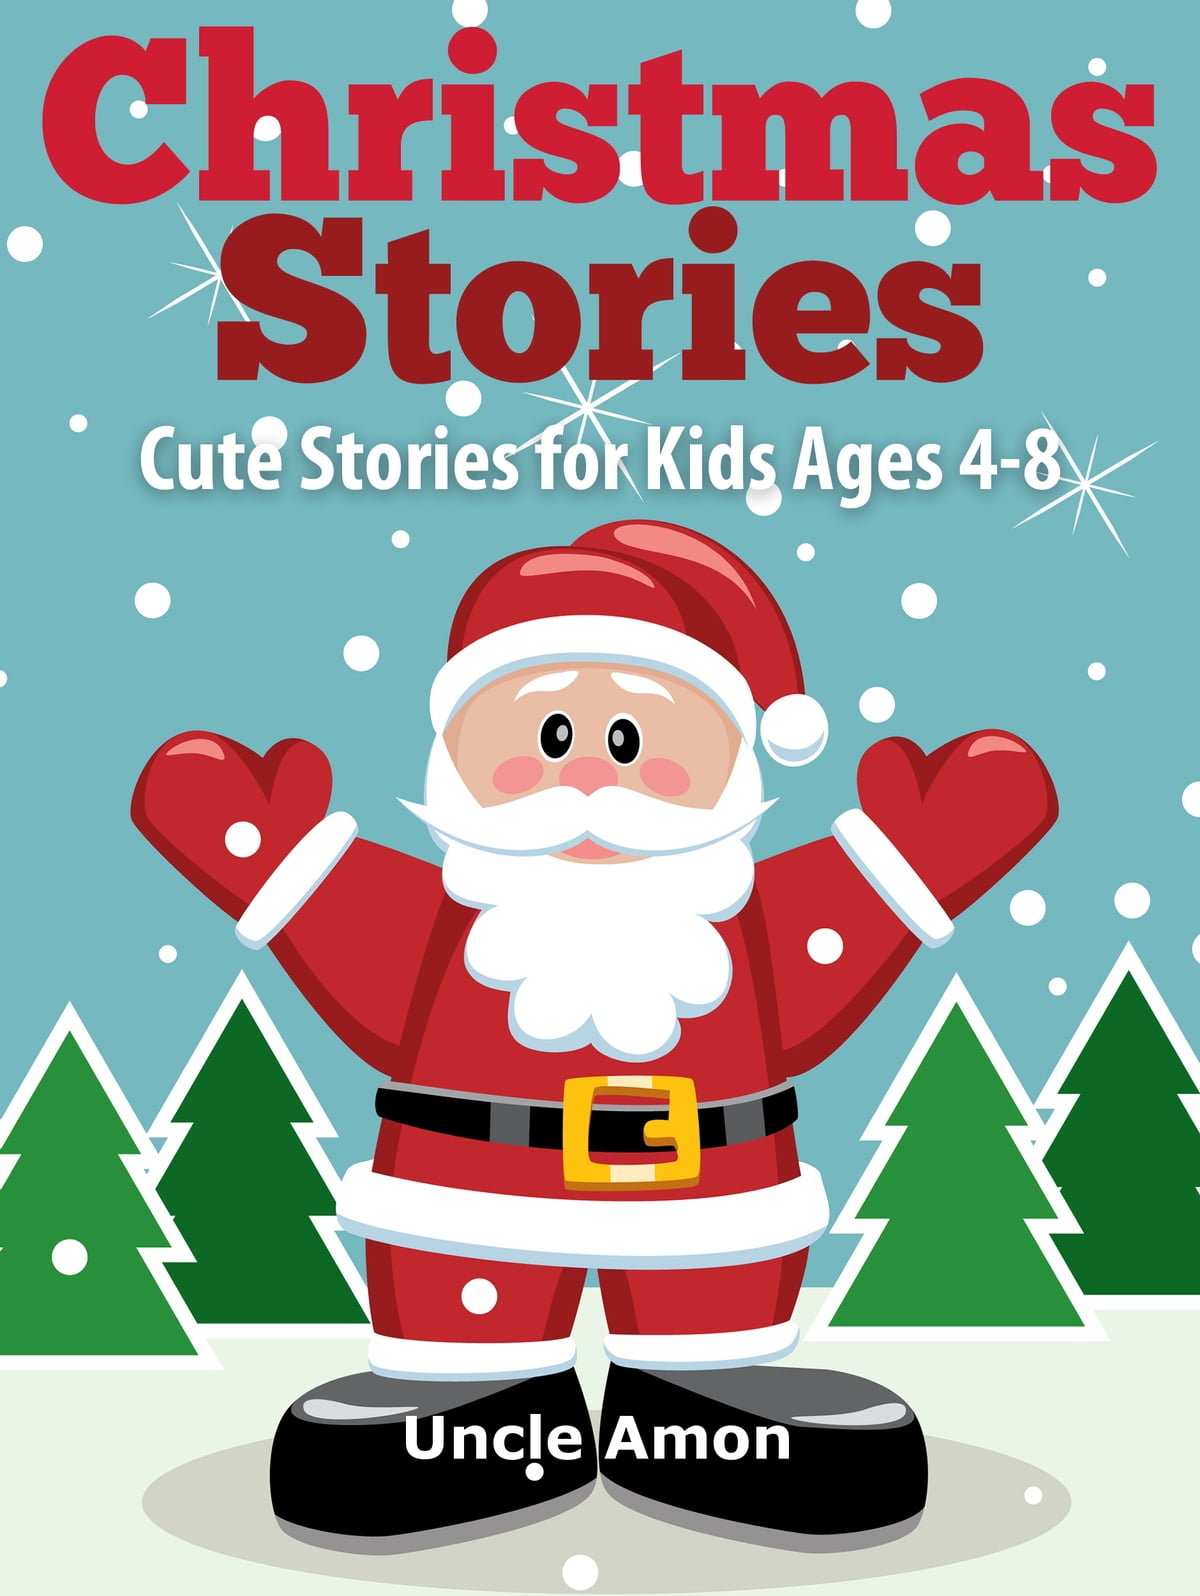 Christmas Stories For Kids.Christmas Stories Cute Stories For Kids Ages 4 8 Ebook By Uncle Amon Rakuten Kobo